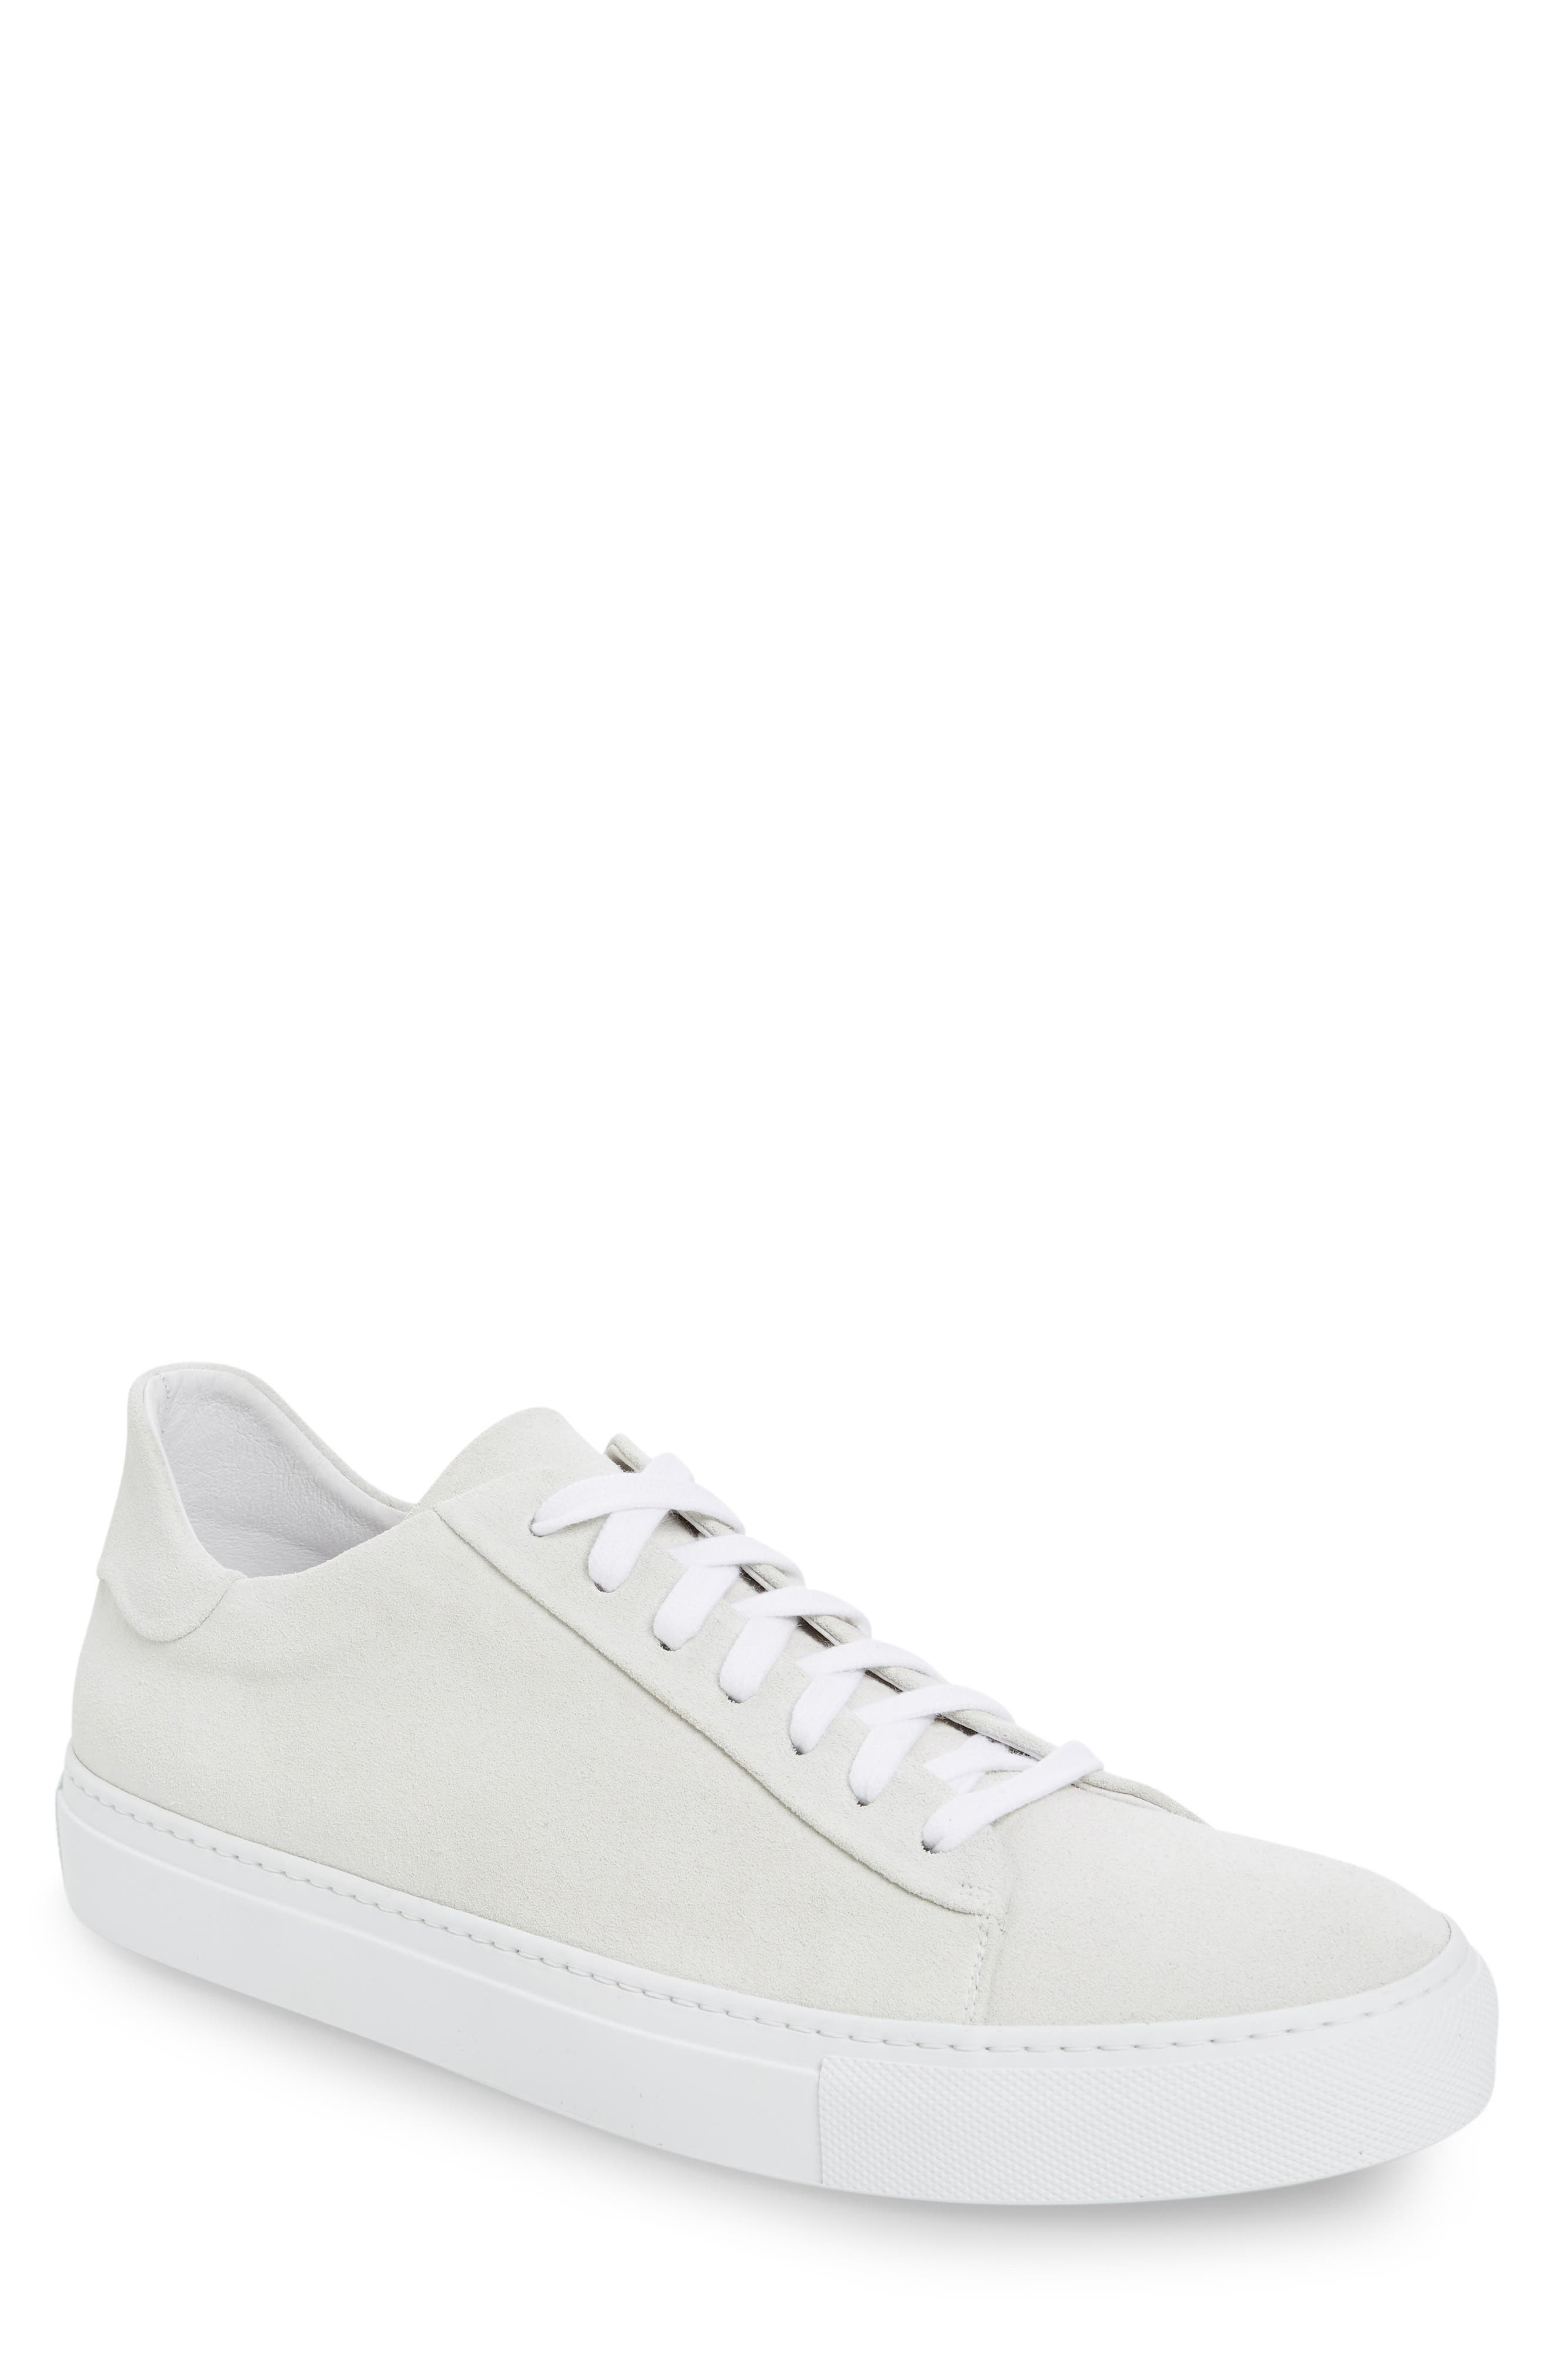 Main Image - wings + horns Court Sneaker (Men)